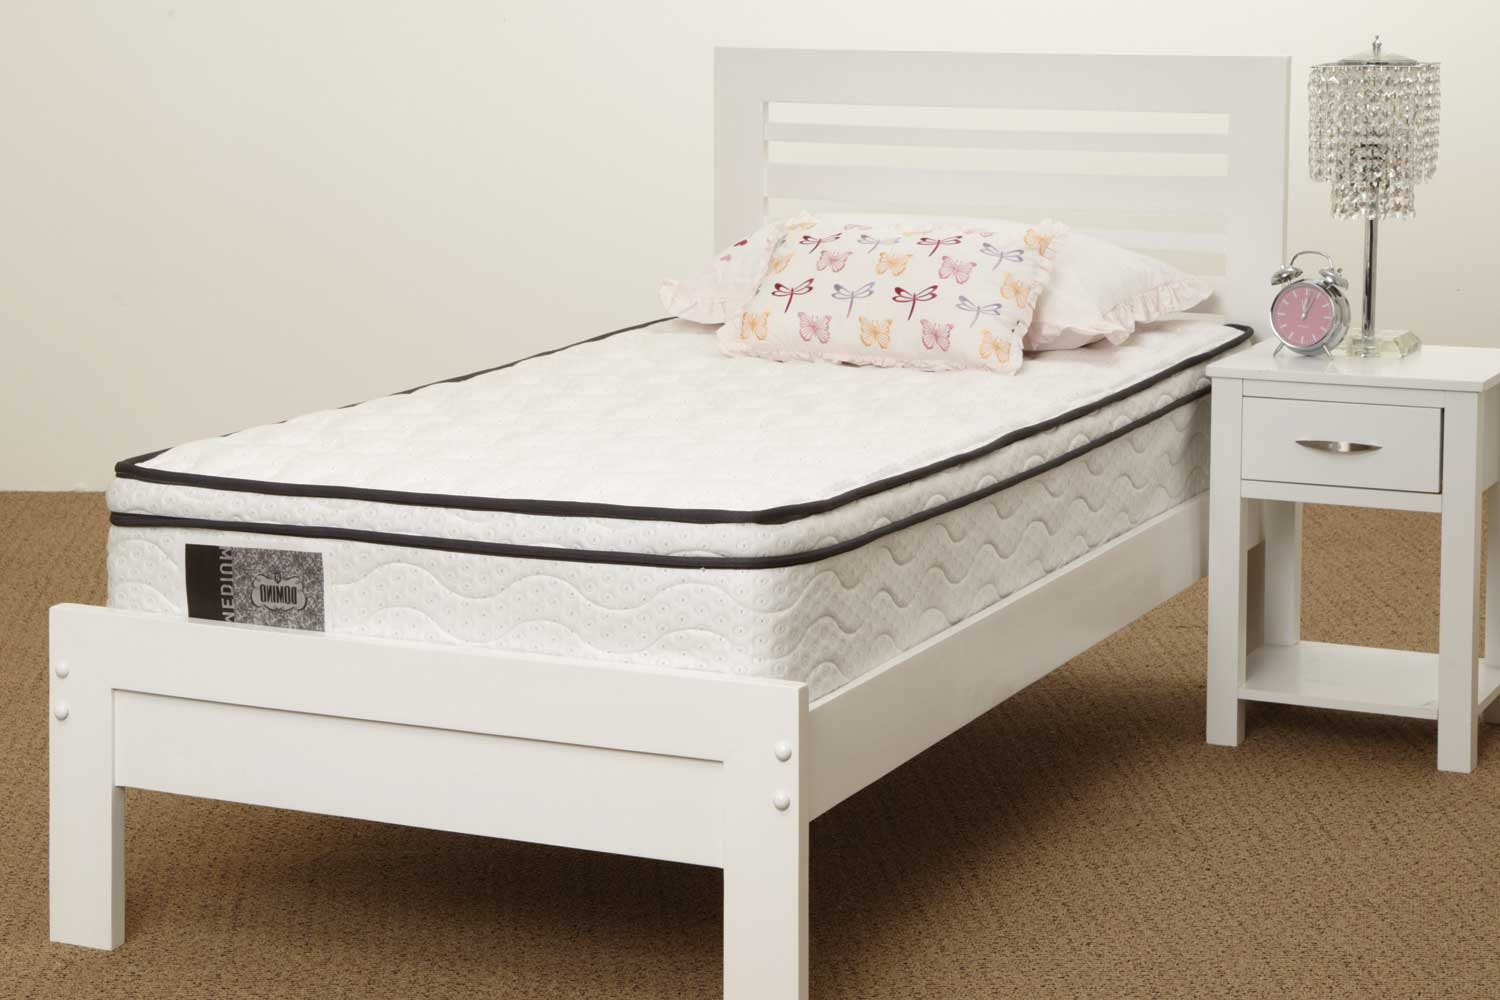 Reno King Single Mattress by A.H. Beard